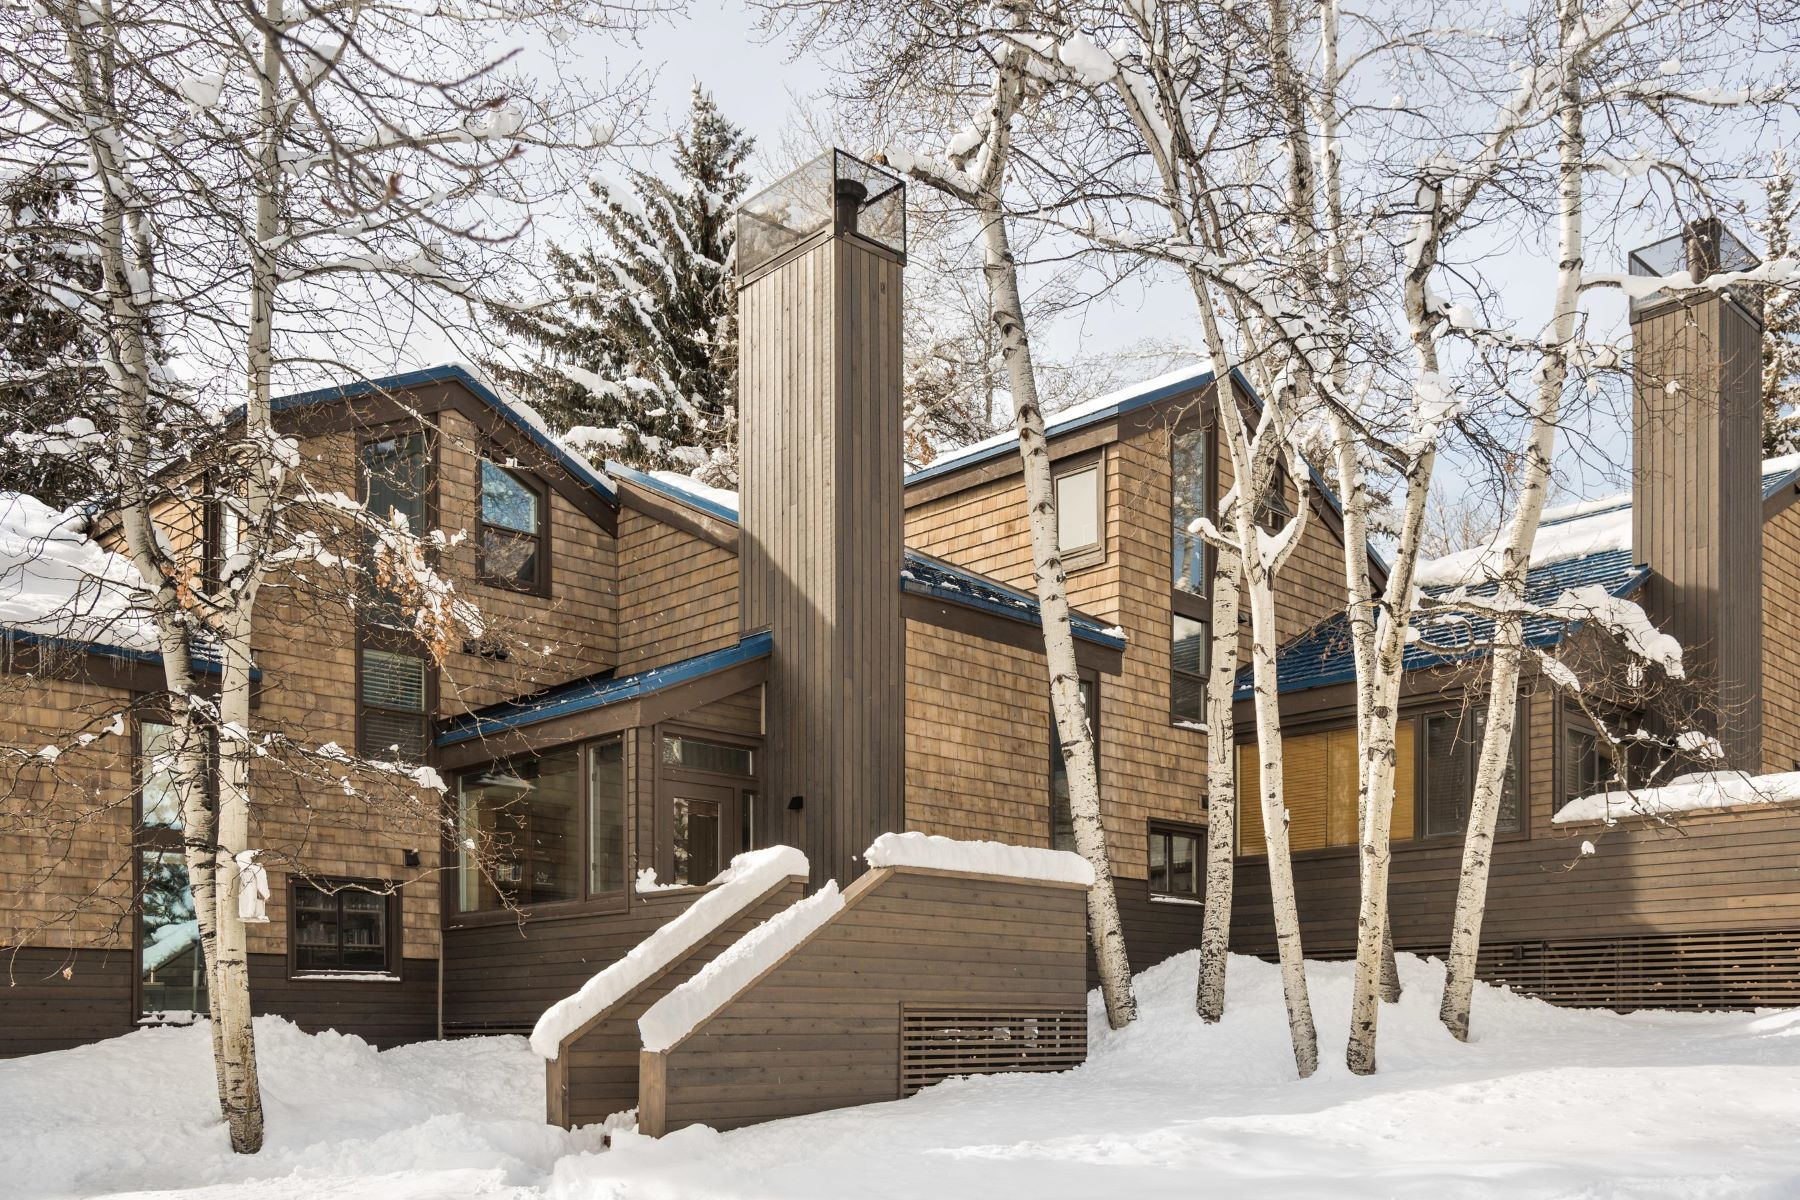 Casa unifamiliar adosada (Townhouse) por un Venta en Snowmass Villas Unit: 16 4000 Brush Creek Road Unit: 16, Snowmass Village, Colorado, 81615 Estados Unidos